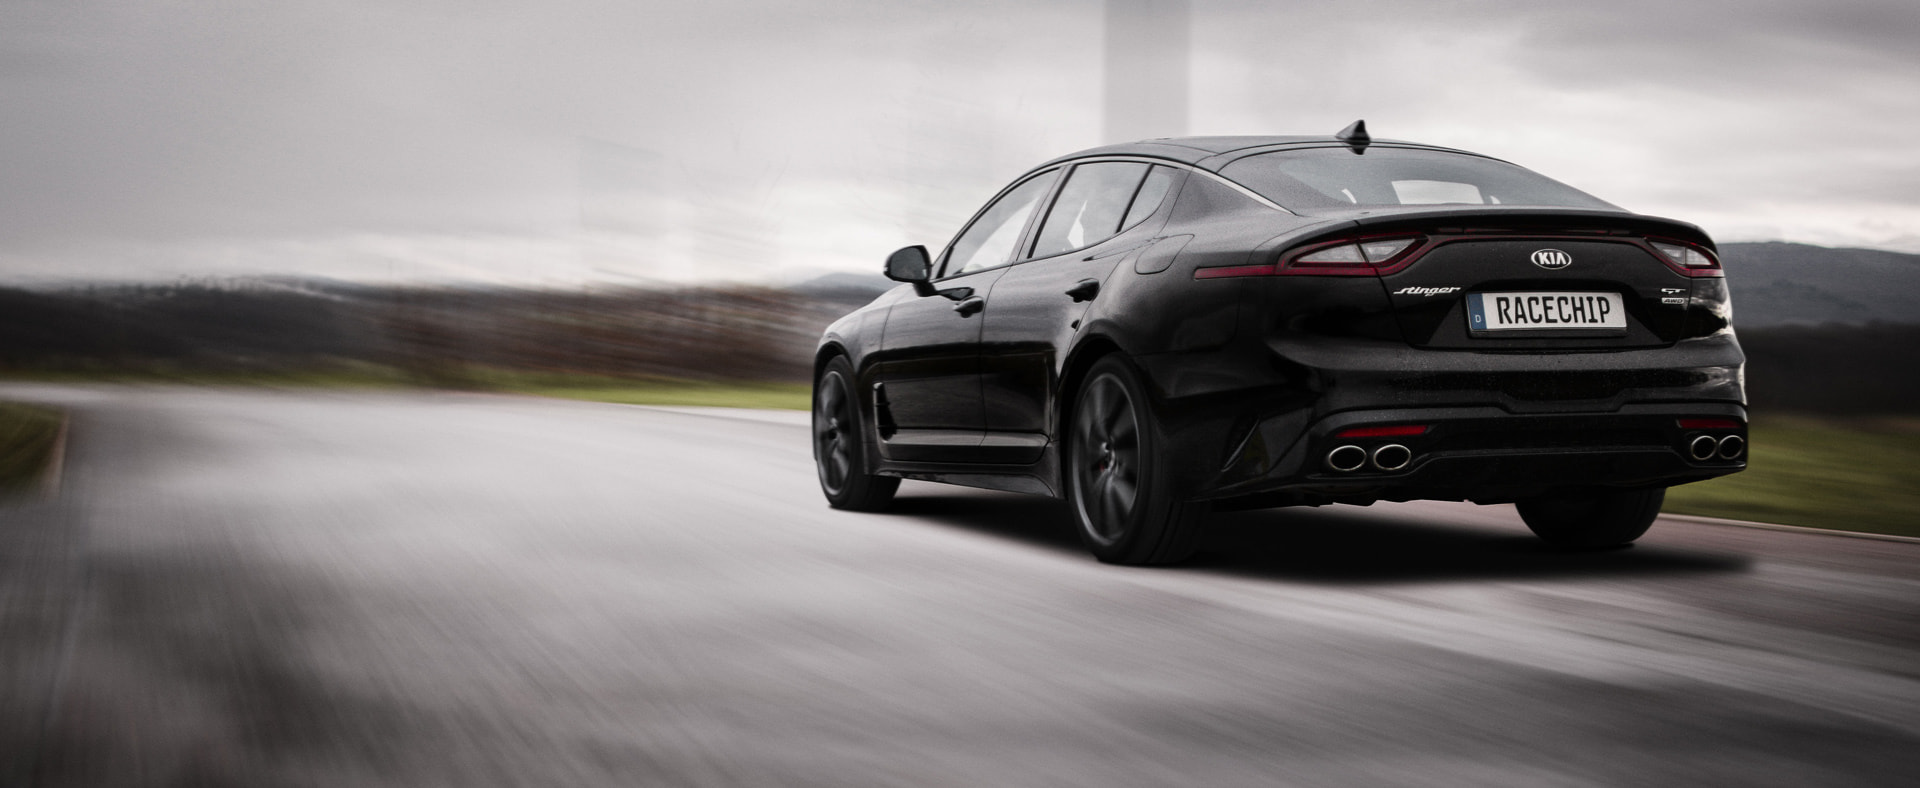 RaceChip unleashes true potential of the Kia Stinger GT - RaceChip News